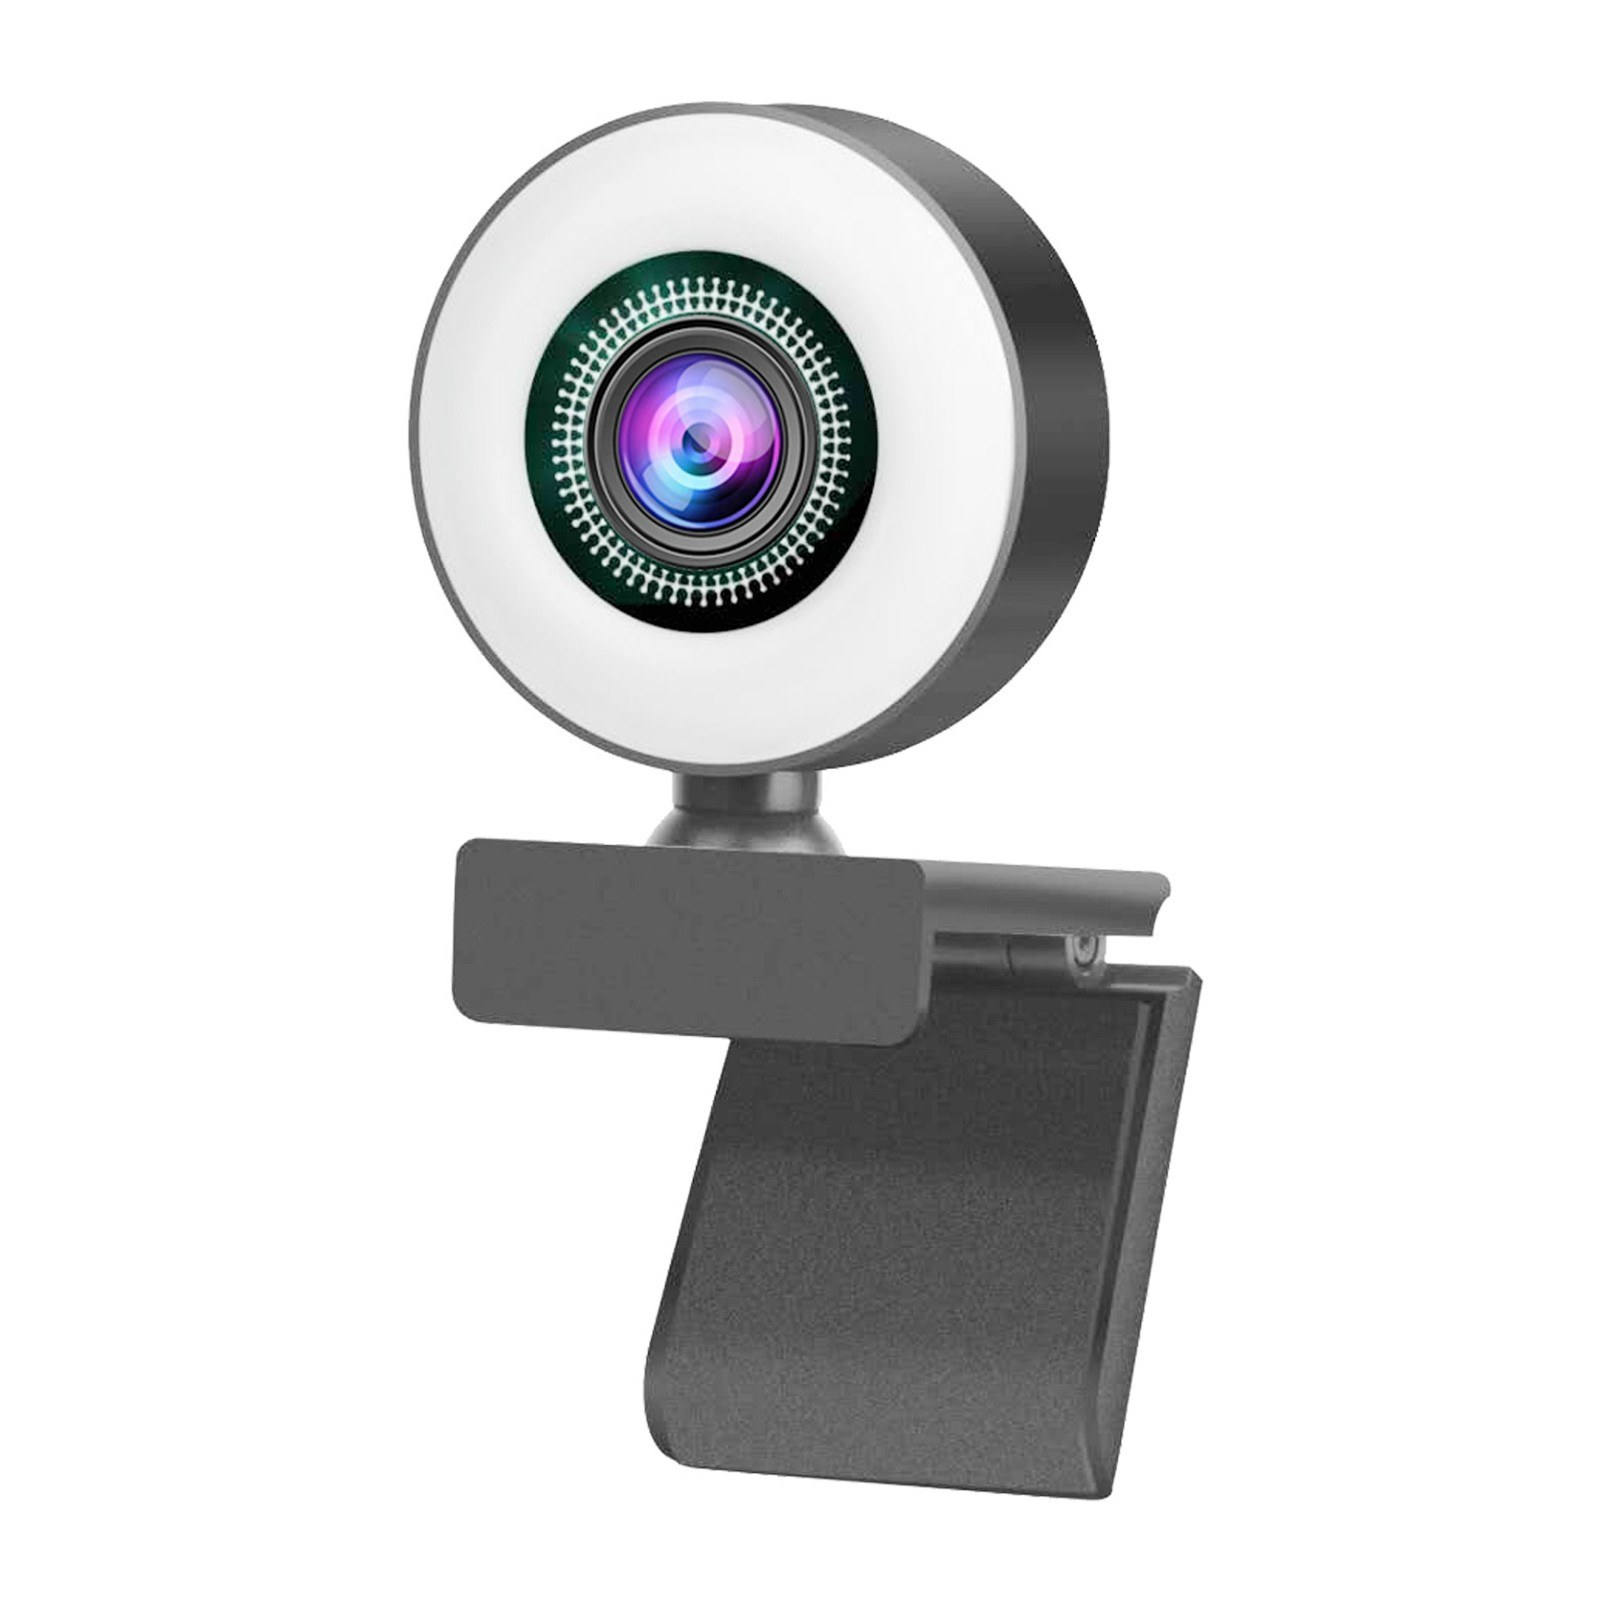 cafago.com - 39% OFF HD 1080P Full Webcam AF Web Camera Built in Adjustable Ring Light Auto Focus Microphone,free shipping+$16.27